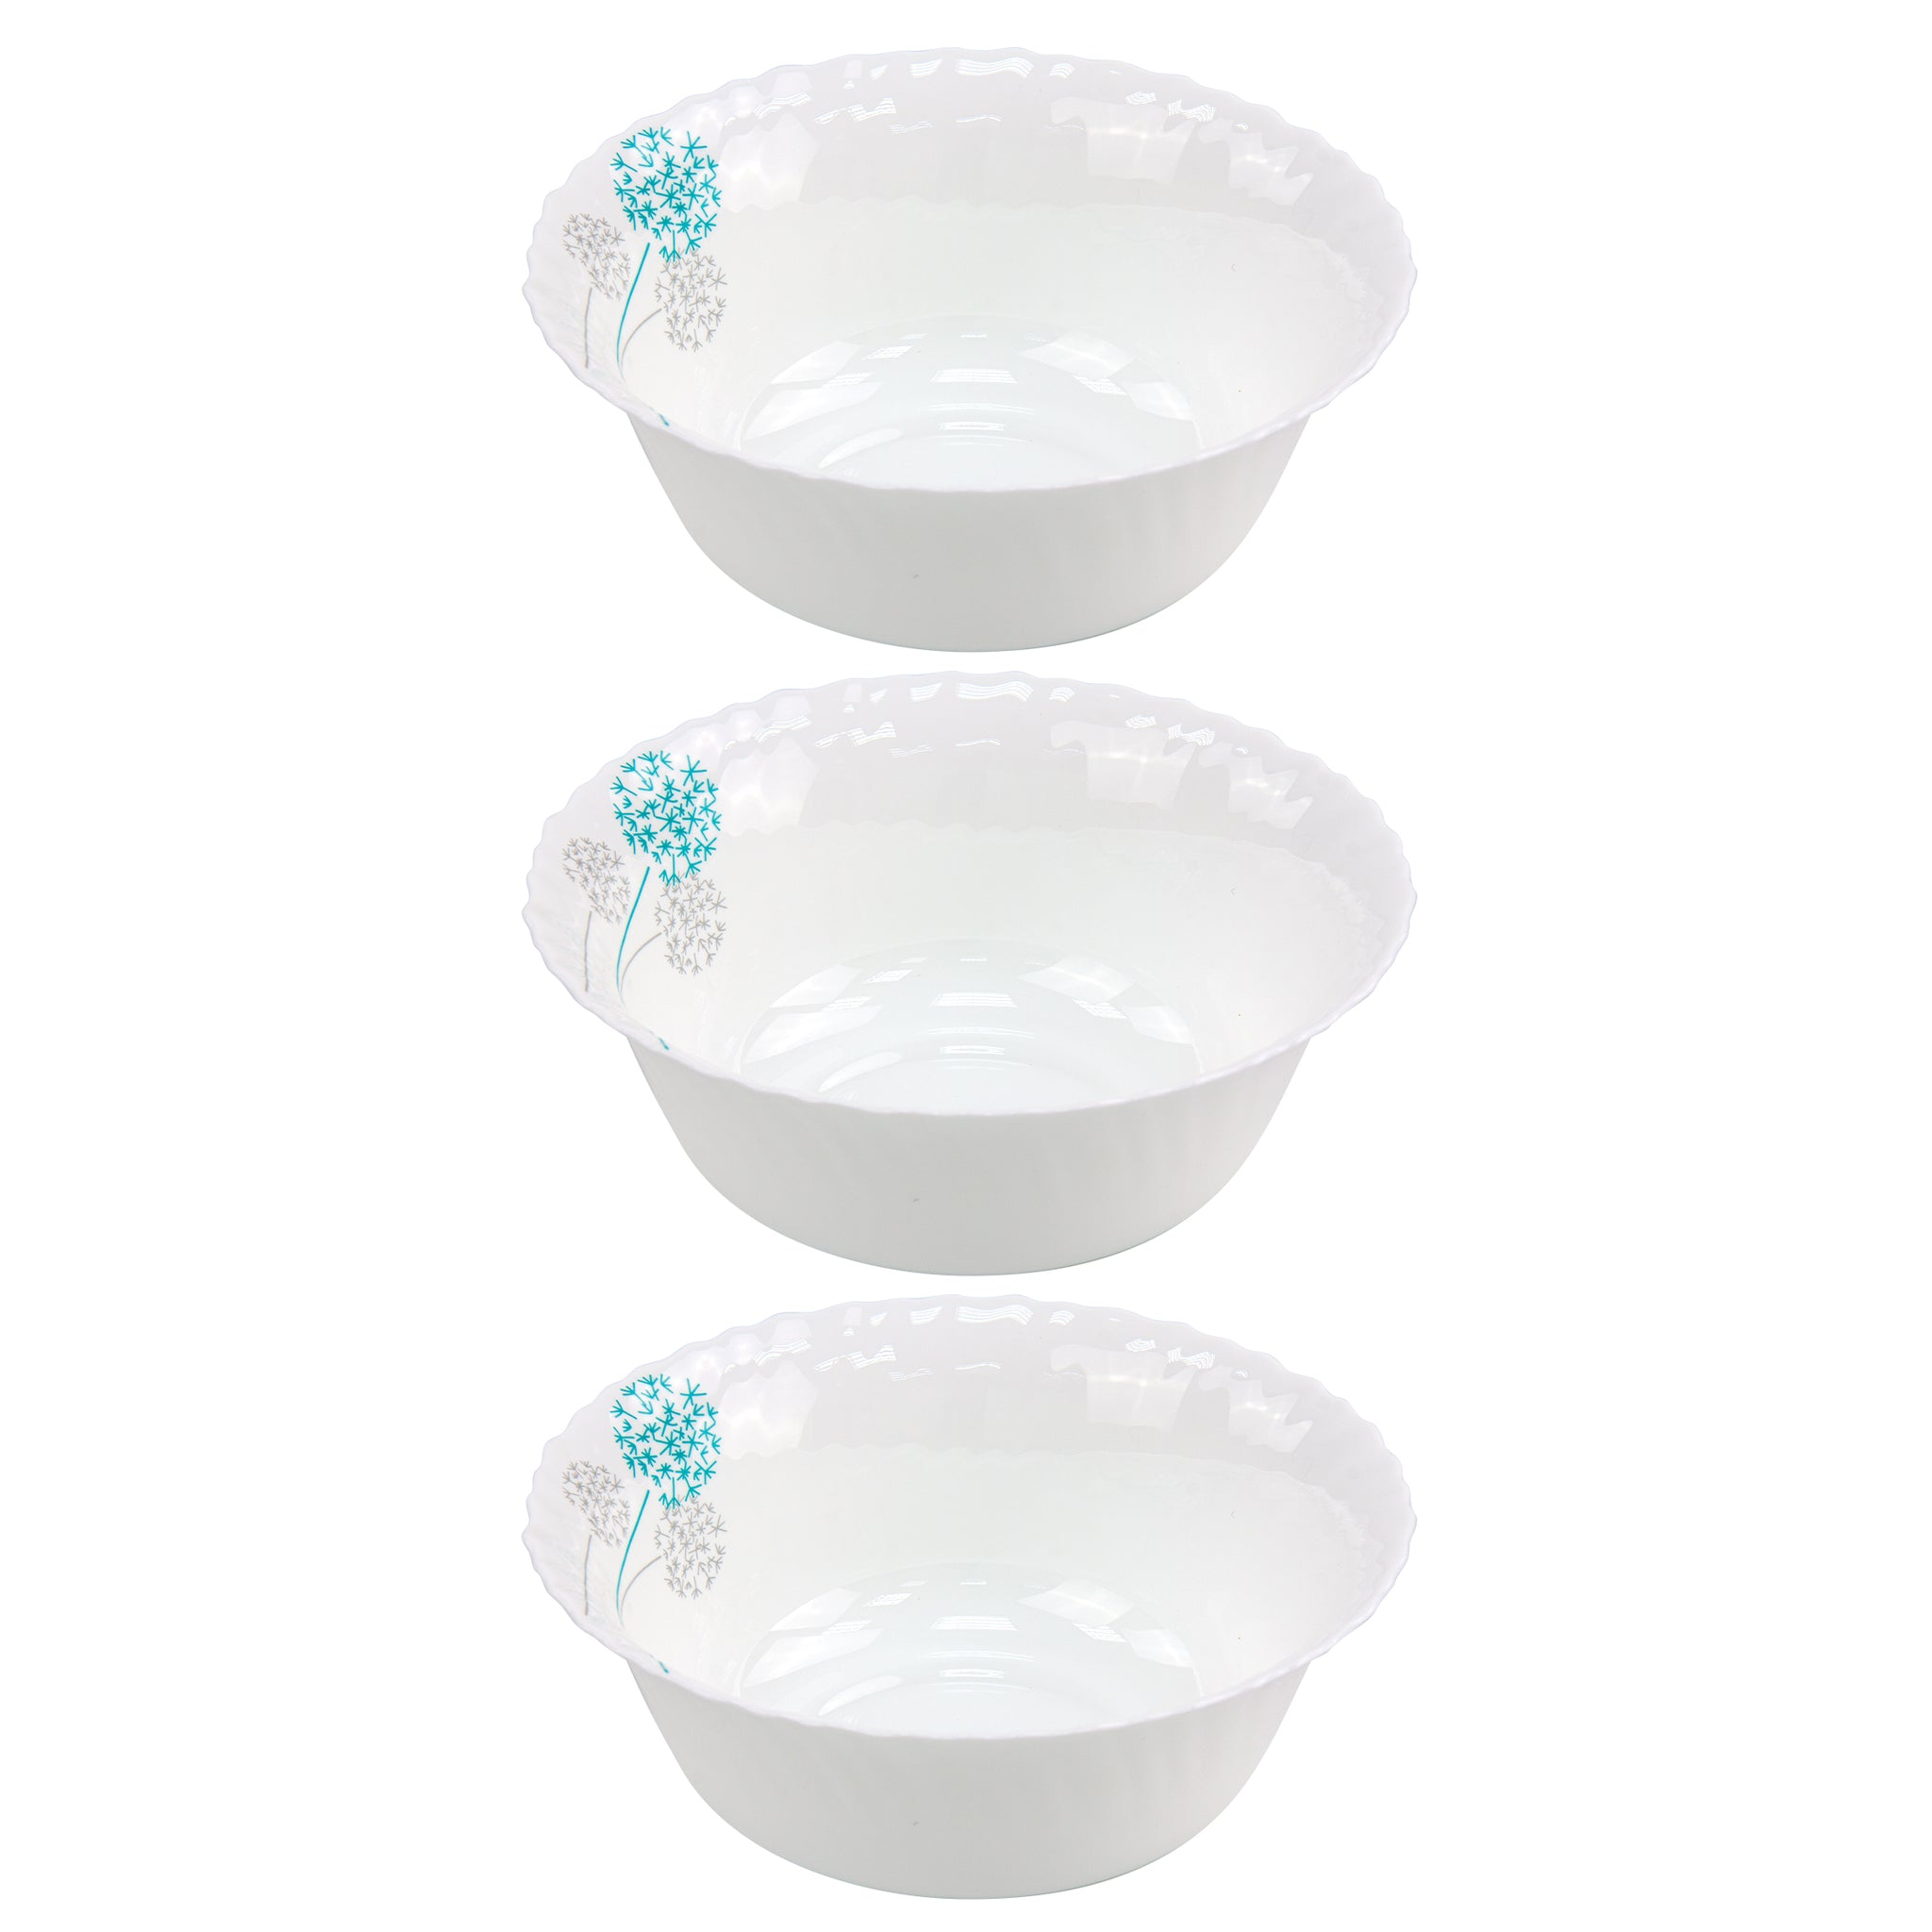 3PCS BOWL SET CROCKERY